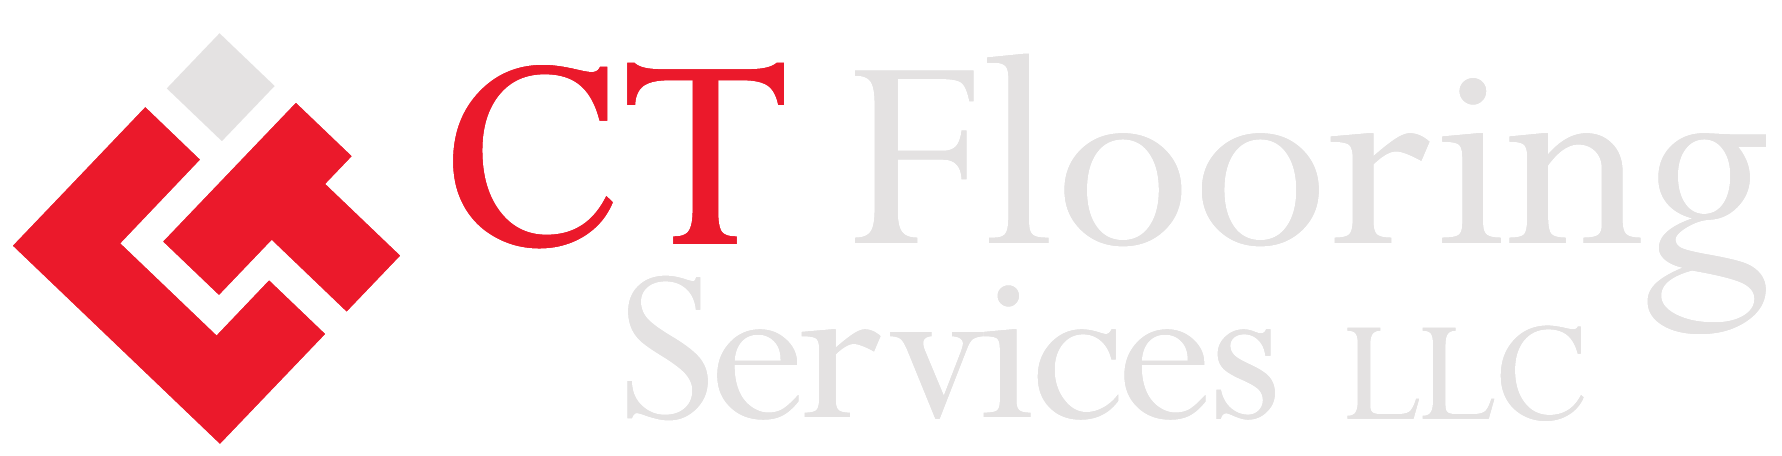 Ct Flooring Services Taking Care Of All Your Flooring Needs